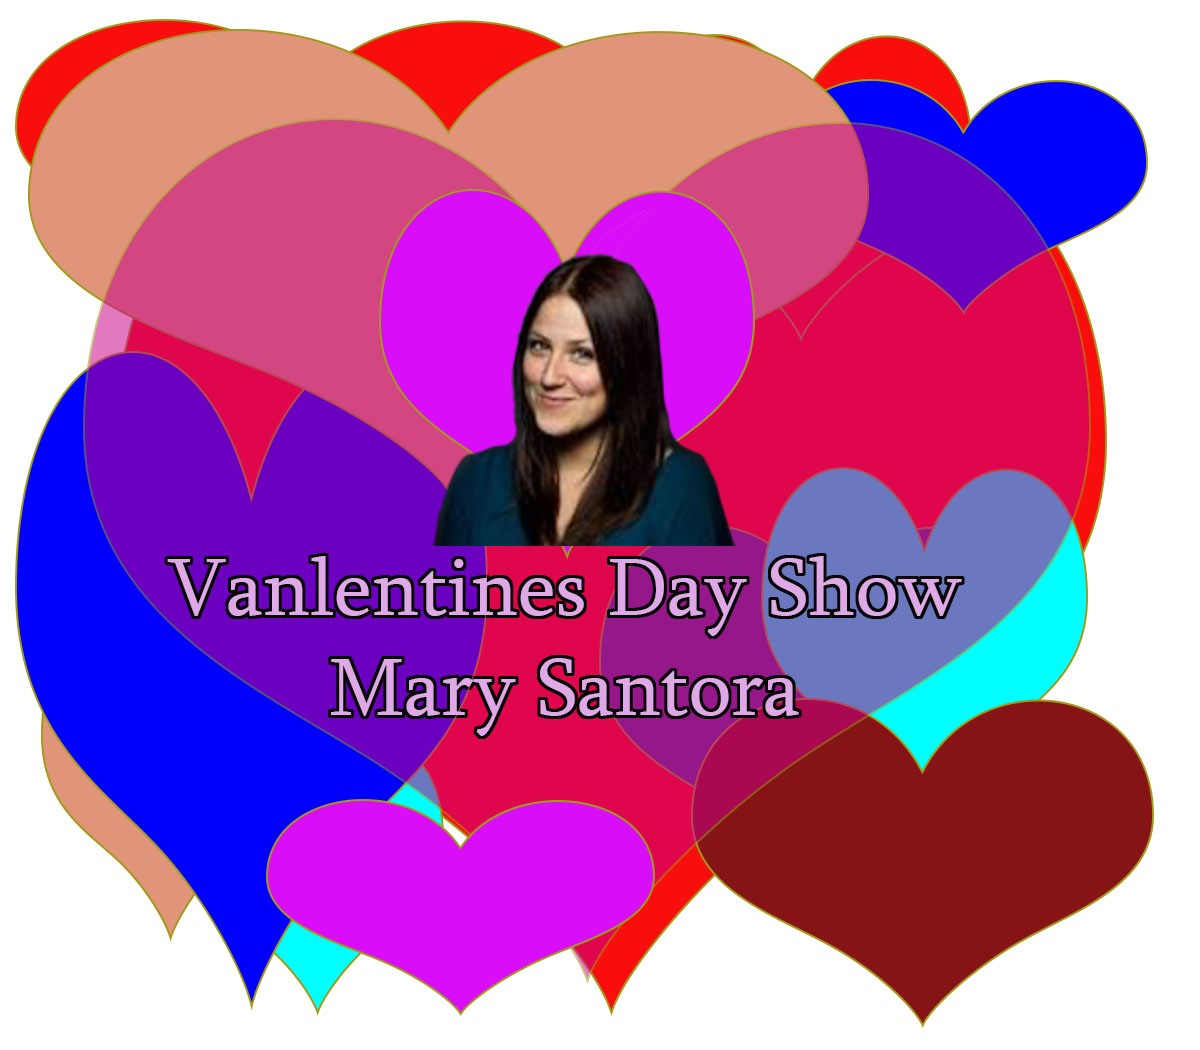 Valentines with Mary Santora 9:30 Show  on Feb 15, 21:30@Funny Stop Comedy Club - Buy tickets and Get information on Funny Stop funnystop.online